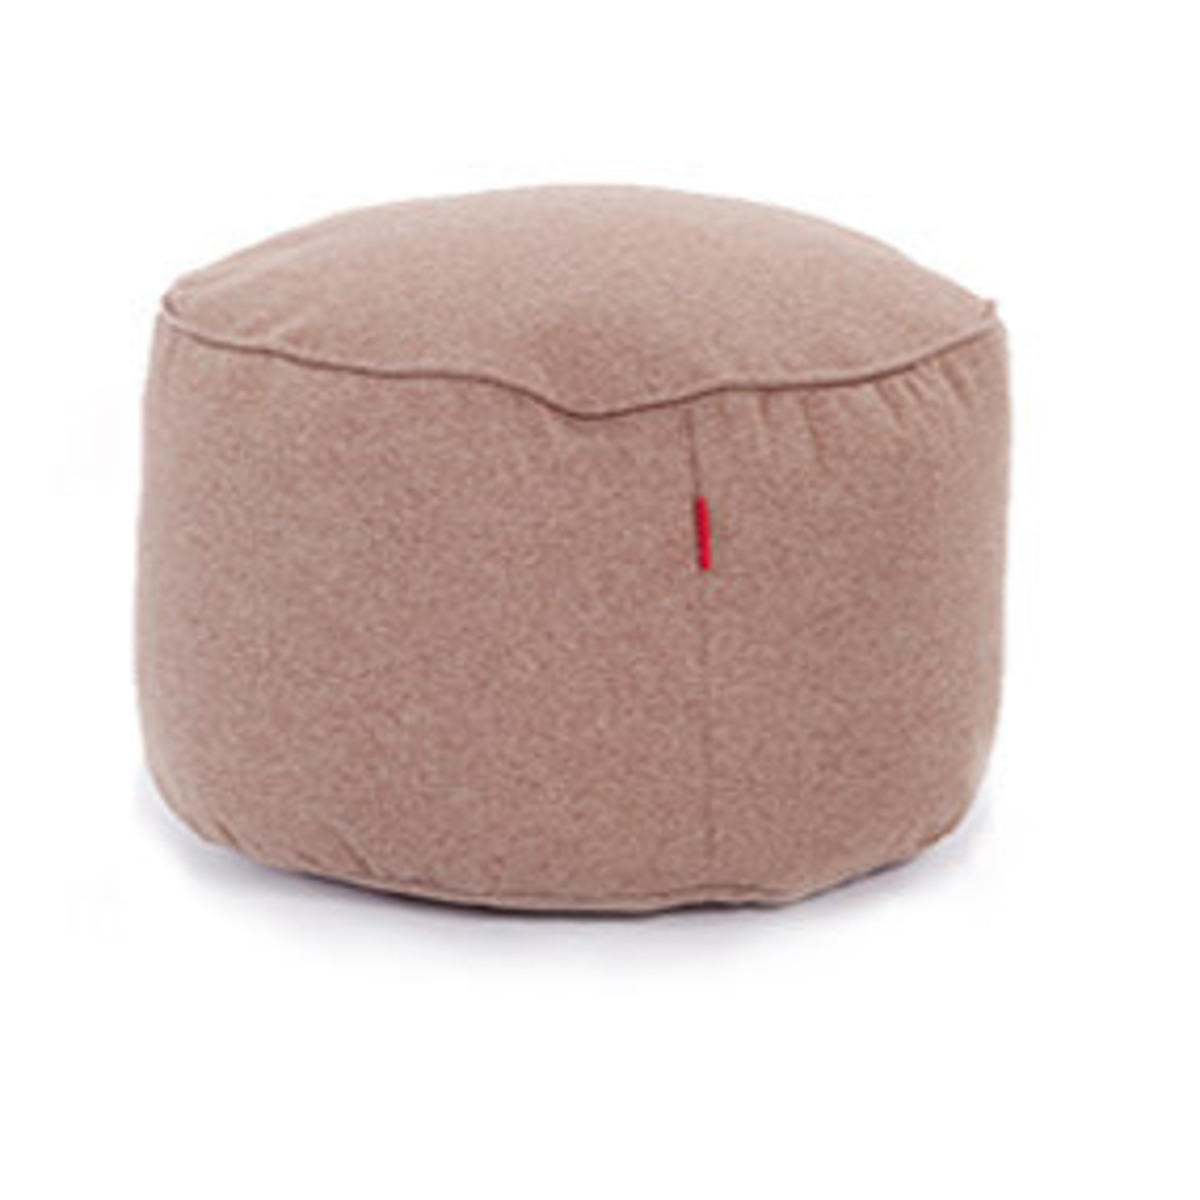 Bean Bag Footstool Details About Round Stuffed Lounger Lazy Bean Bag Cover Chair Sofa Footstool Footrest Pocket